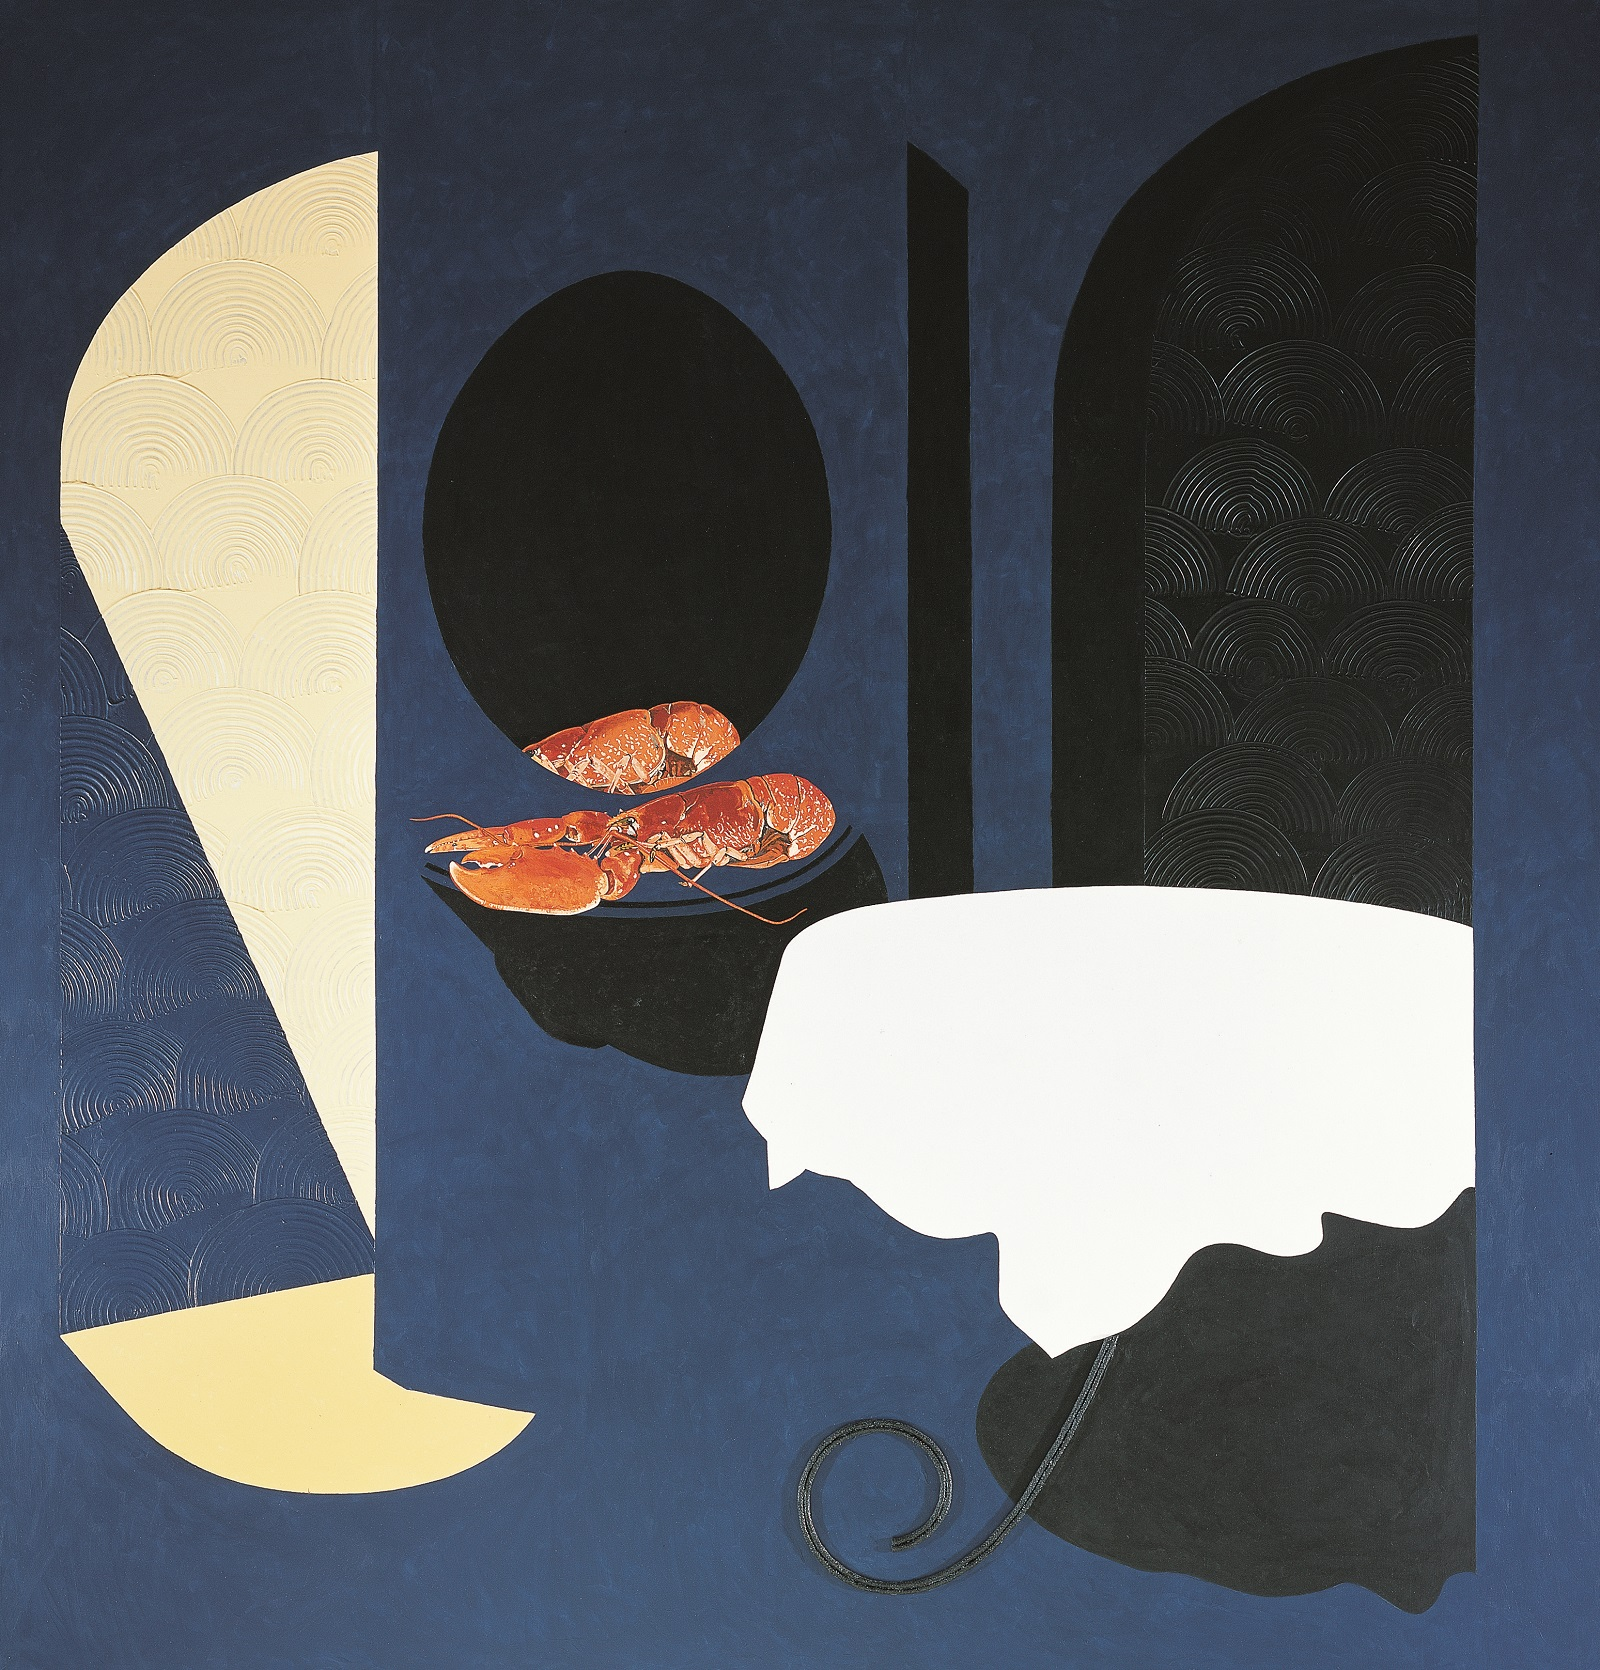 A white tablecloth draped over a round tabled against a dark blue background. To the left of the table is a lobster resting on a side table, partially reflected in an oval mirror.